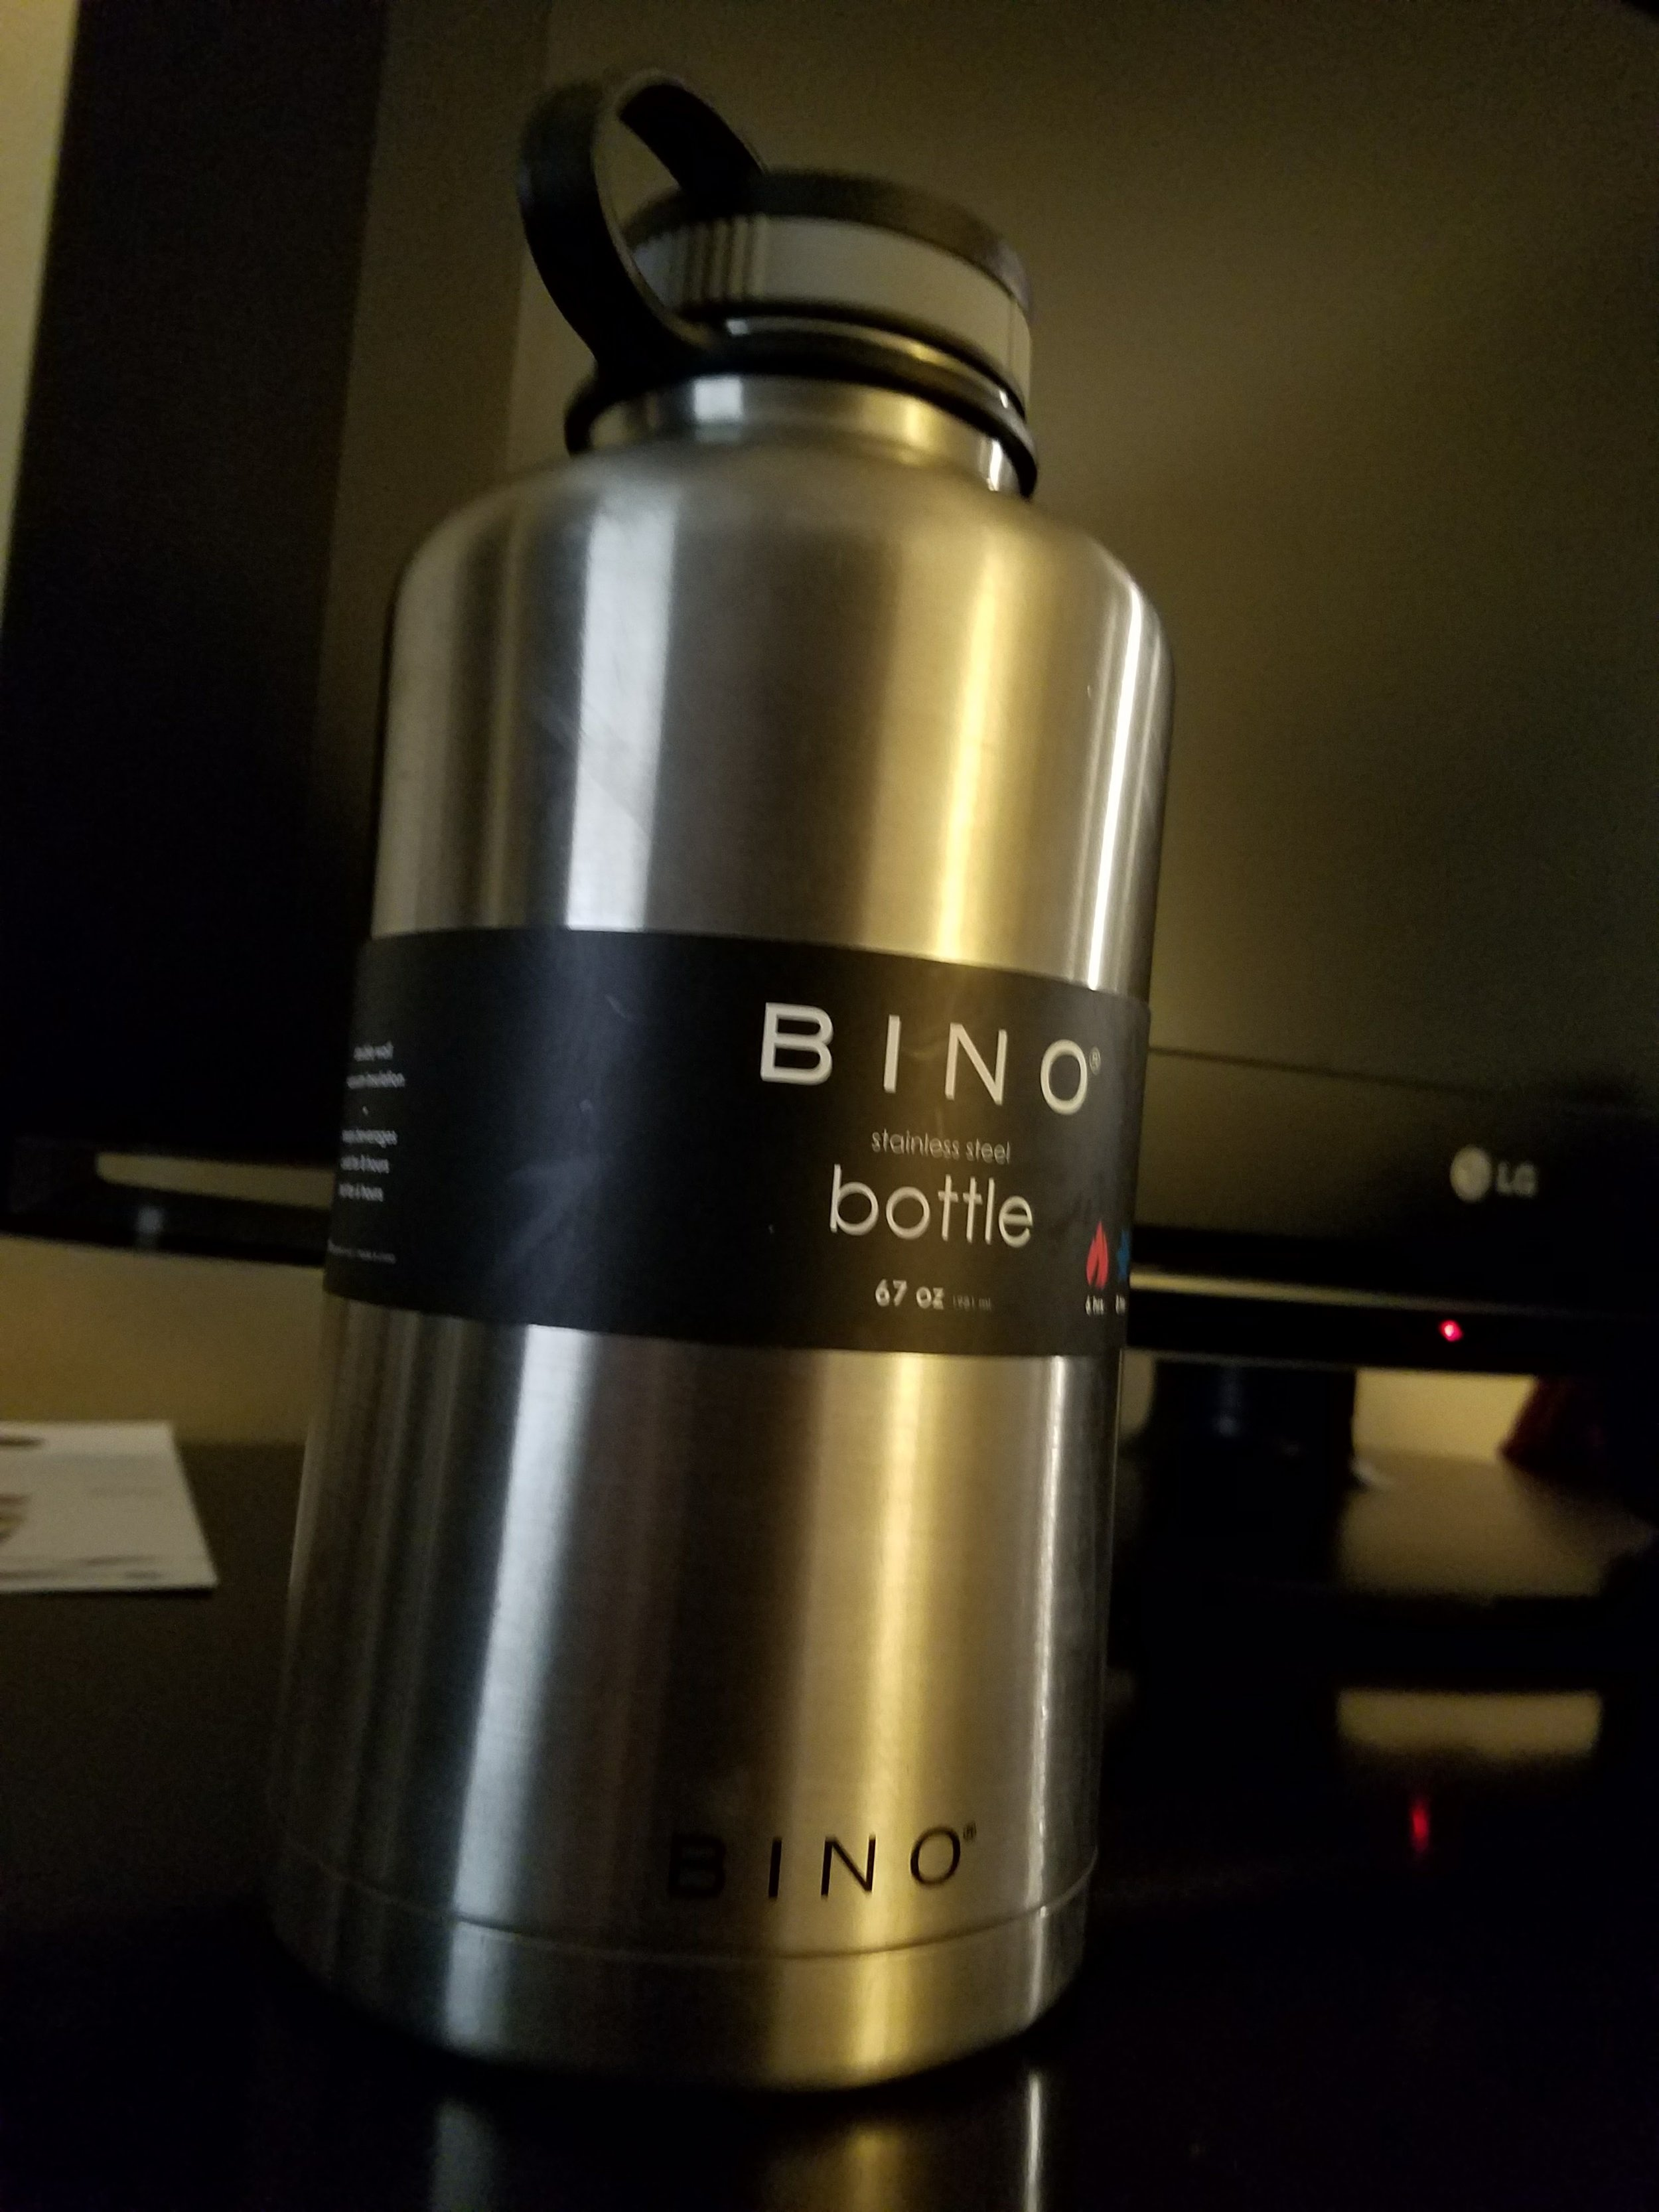 My very large water bottle to aid in my hydration journey.